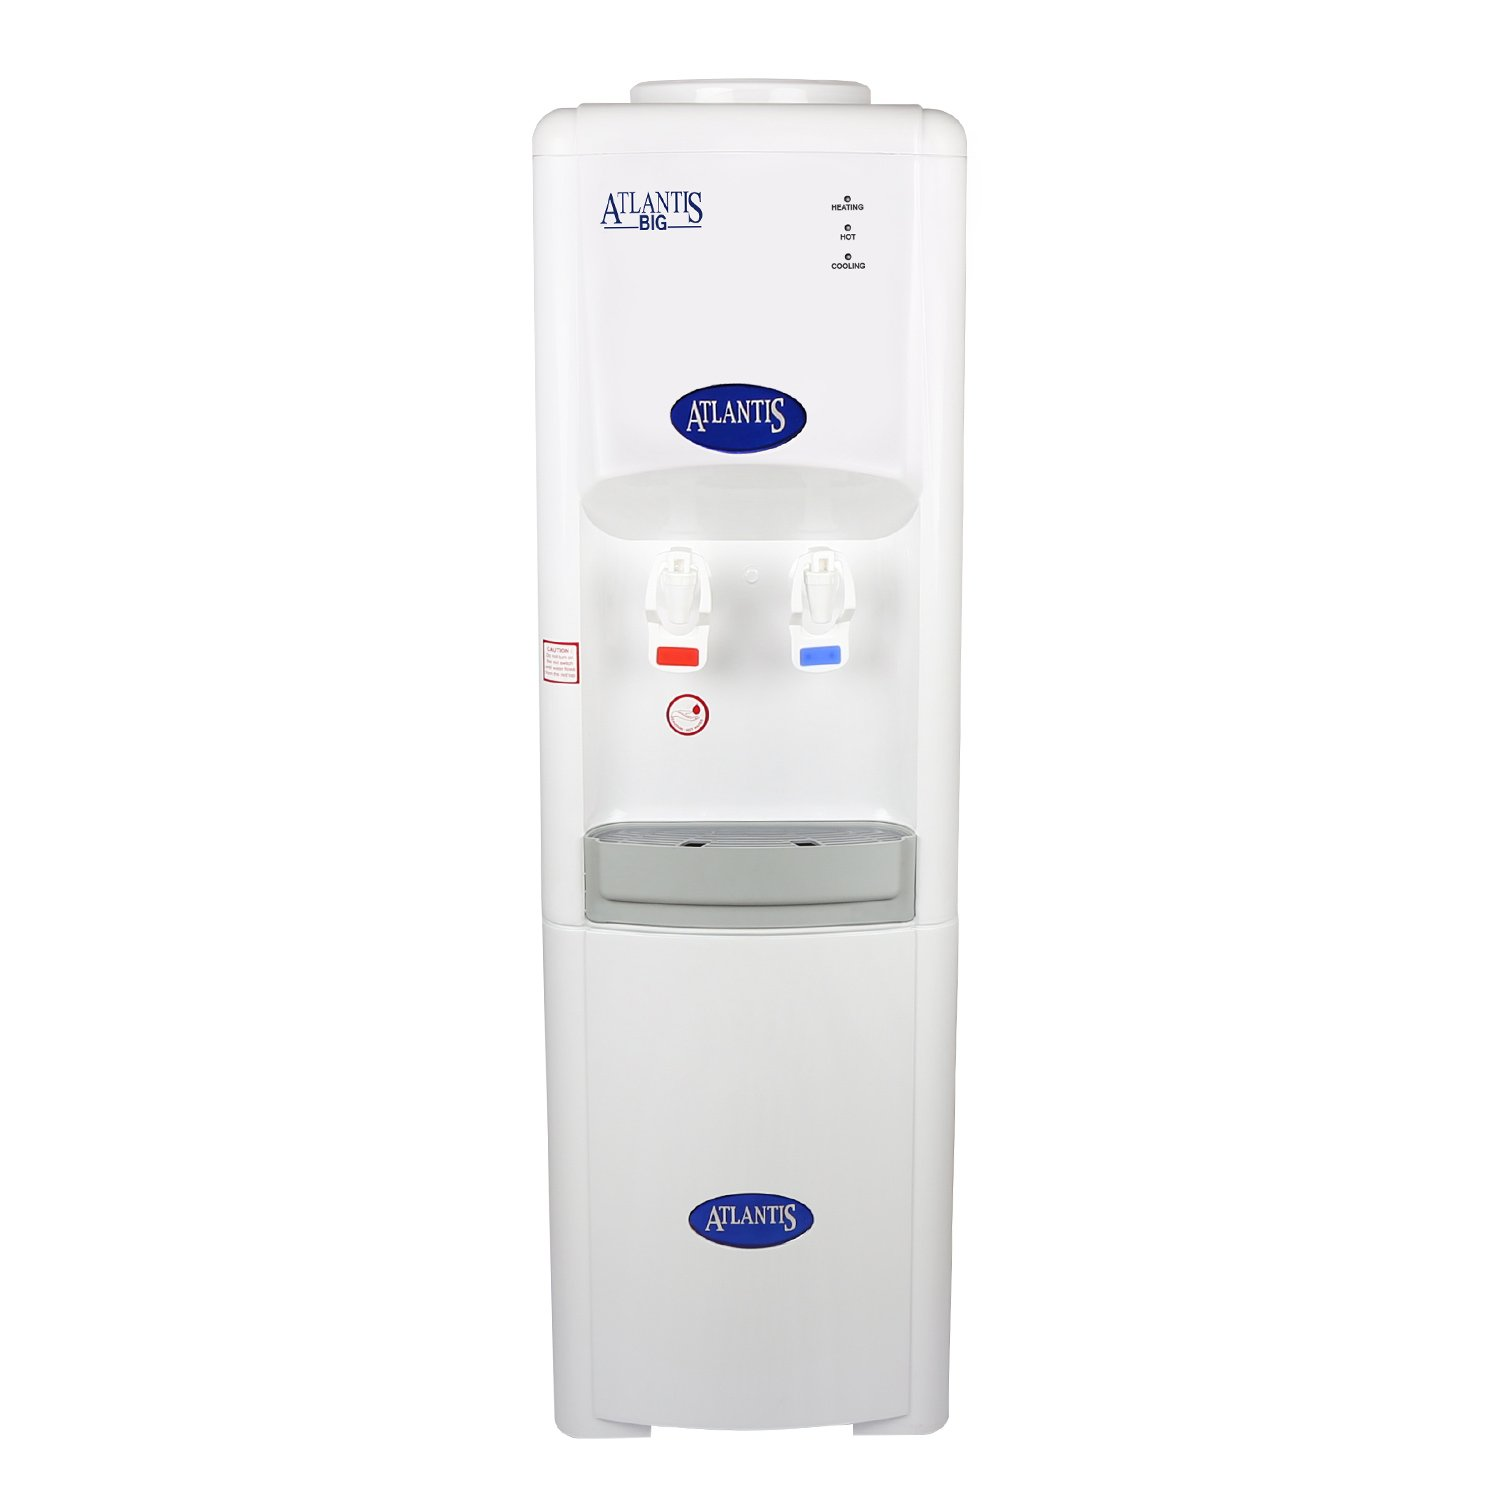 Atlantis Big Hot And Cold Floor Standing Water Dispenser For Ro Amazon In Home Kitchen